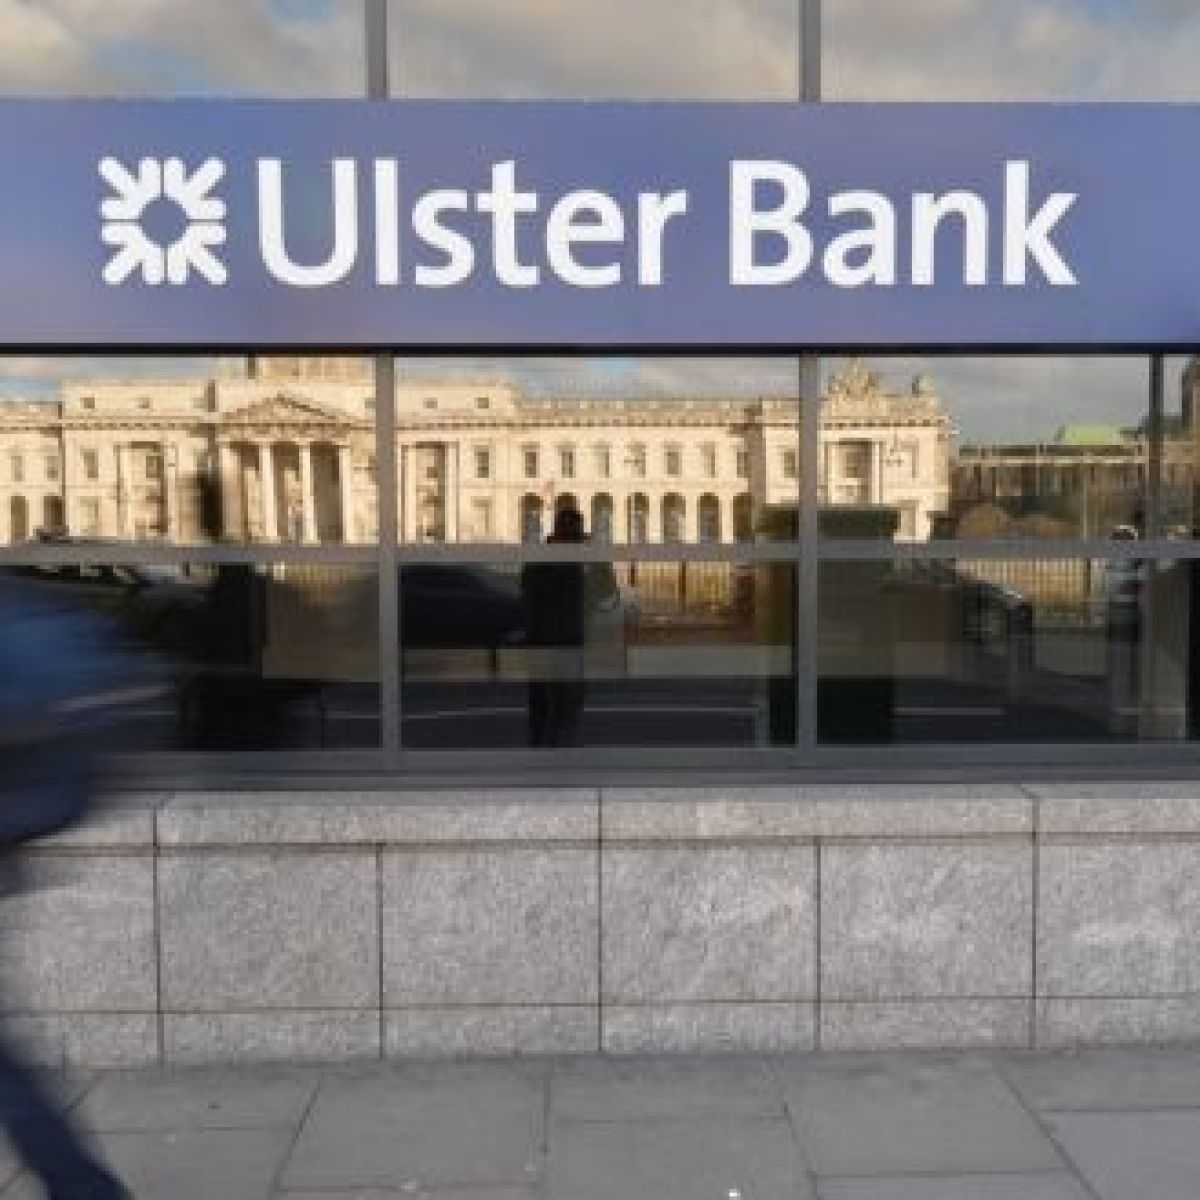 US company Cabot goes after Ulster Bank borrowers